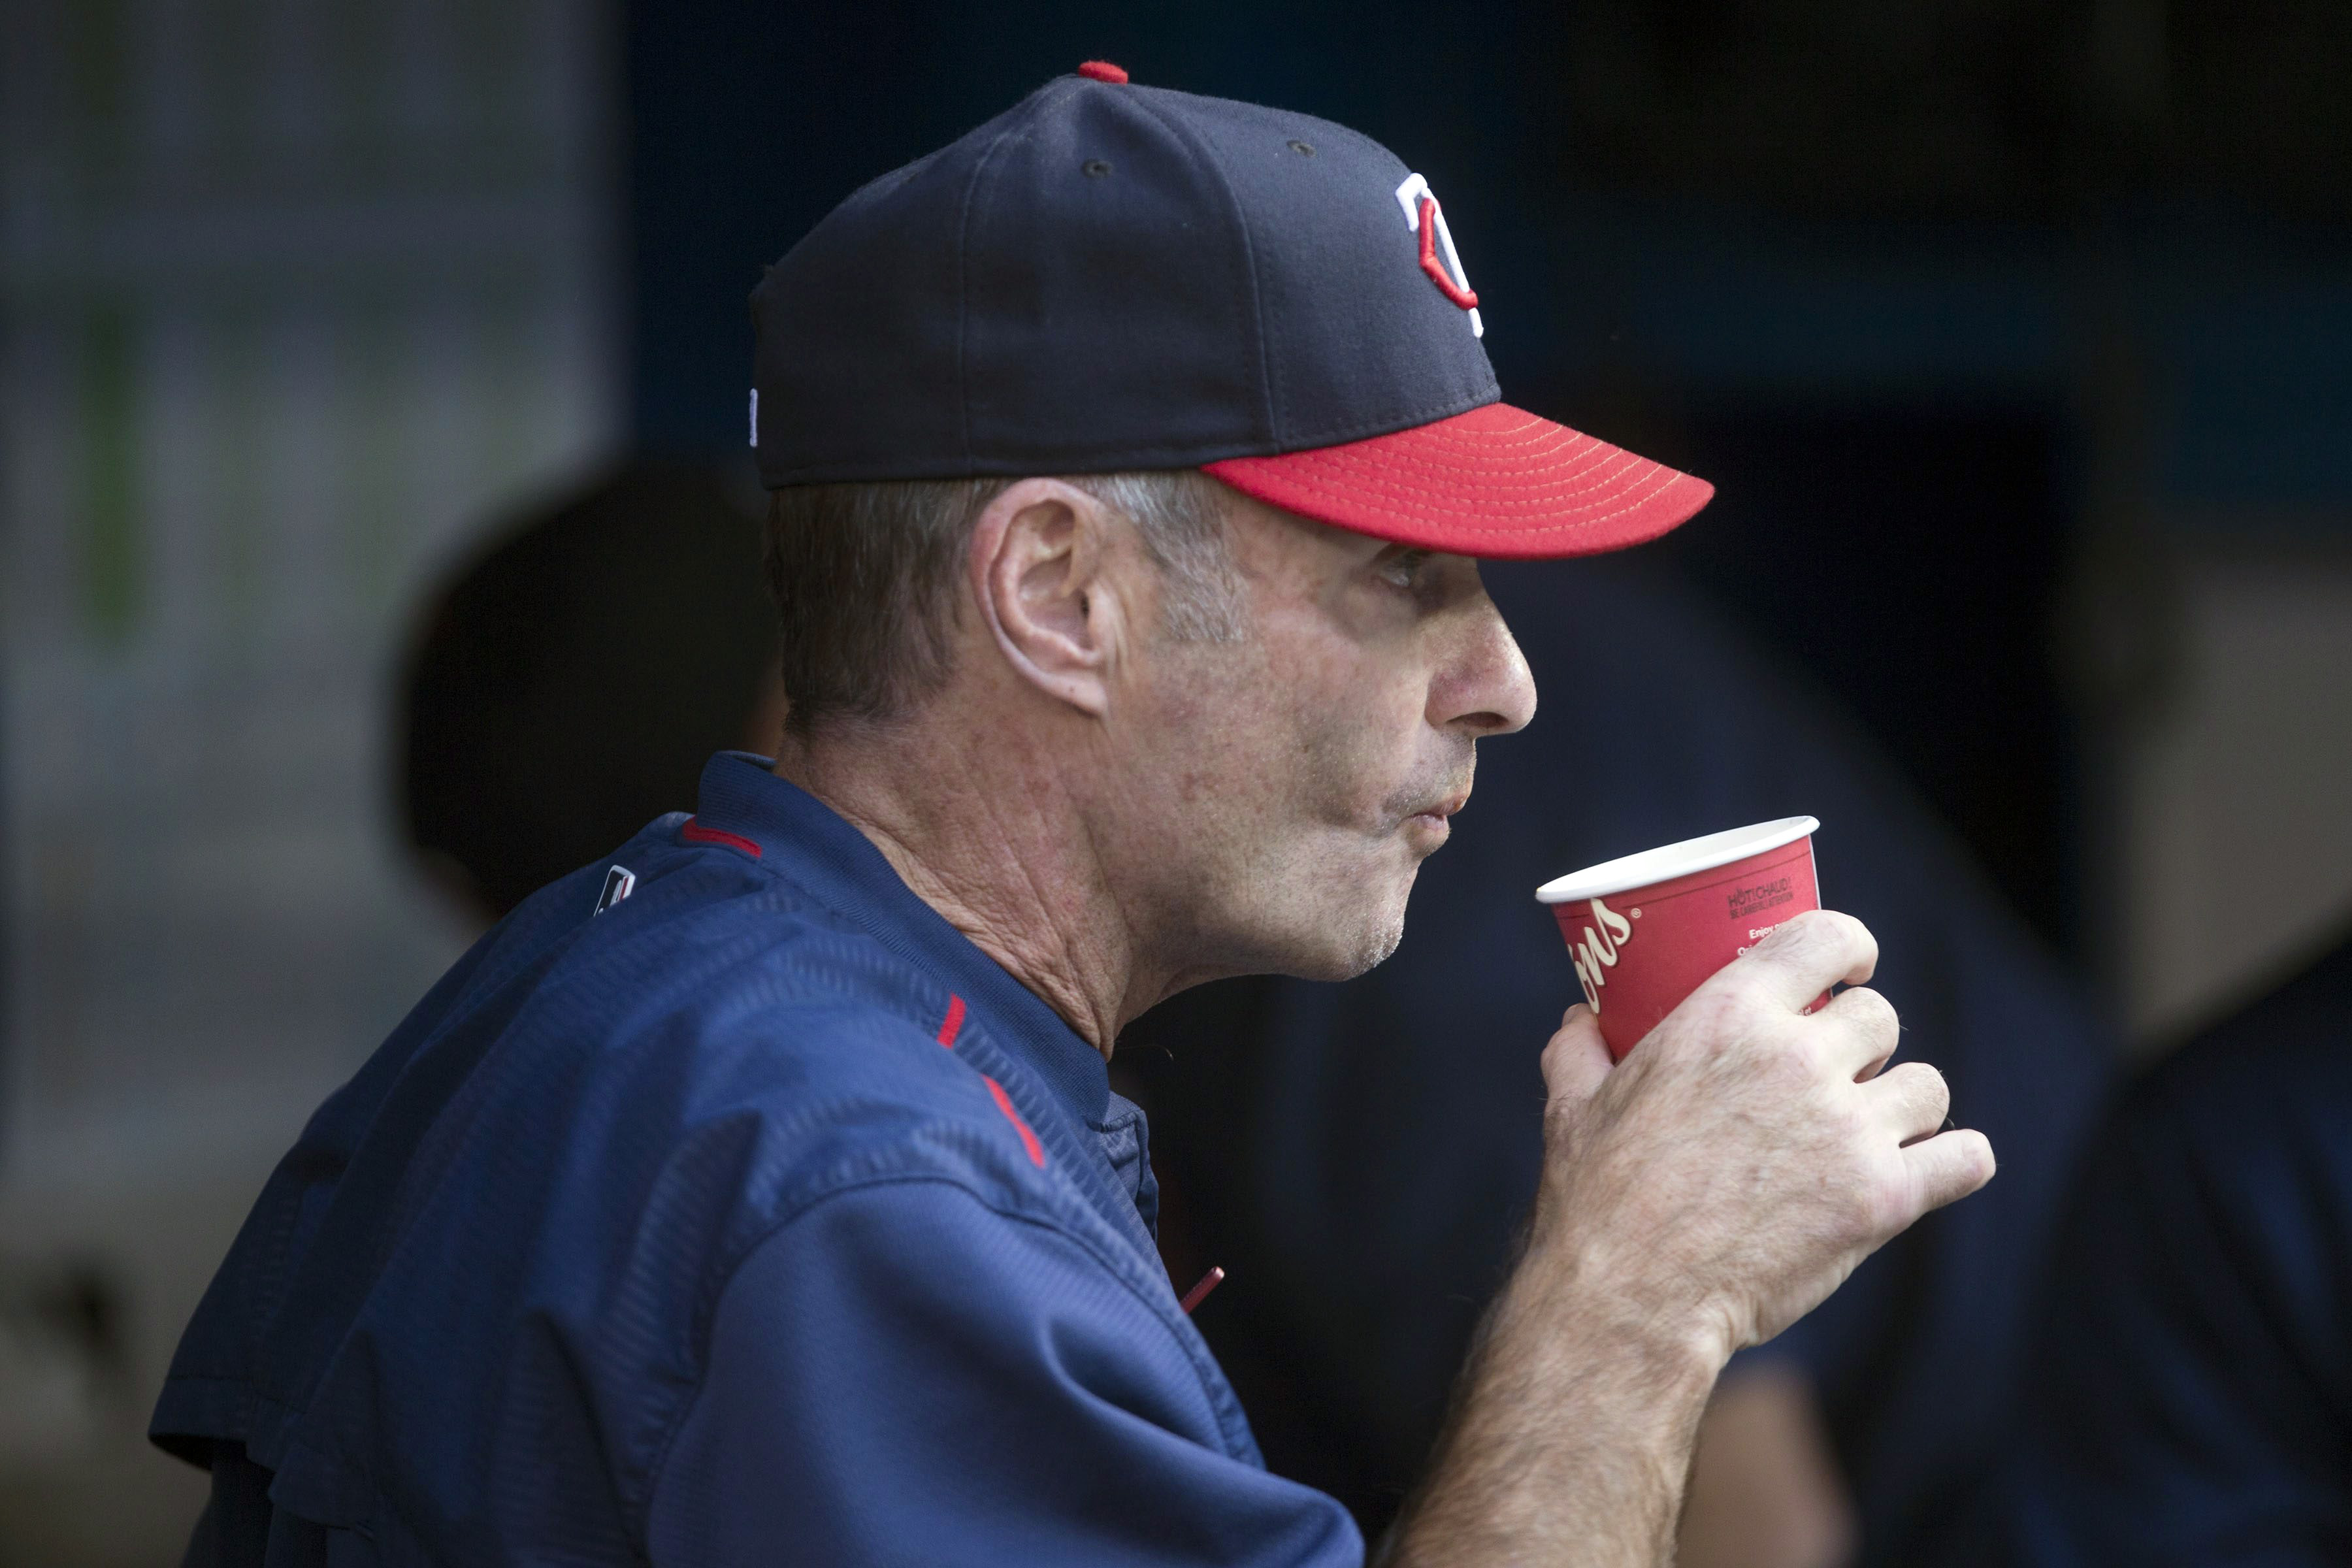 Minnesota Twins manager Paul Molitor sits in the dugout before baseball game action against the Toronto Blue Jays in Toronto, Friday, Aug. 26, 2016. (Chris Young/The Canadian Press via AP)